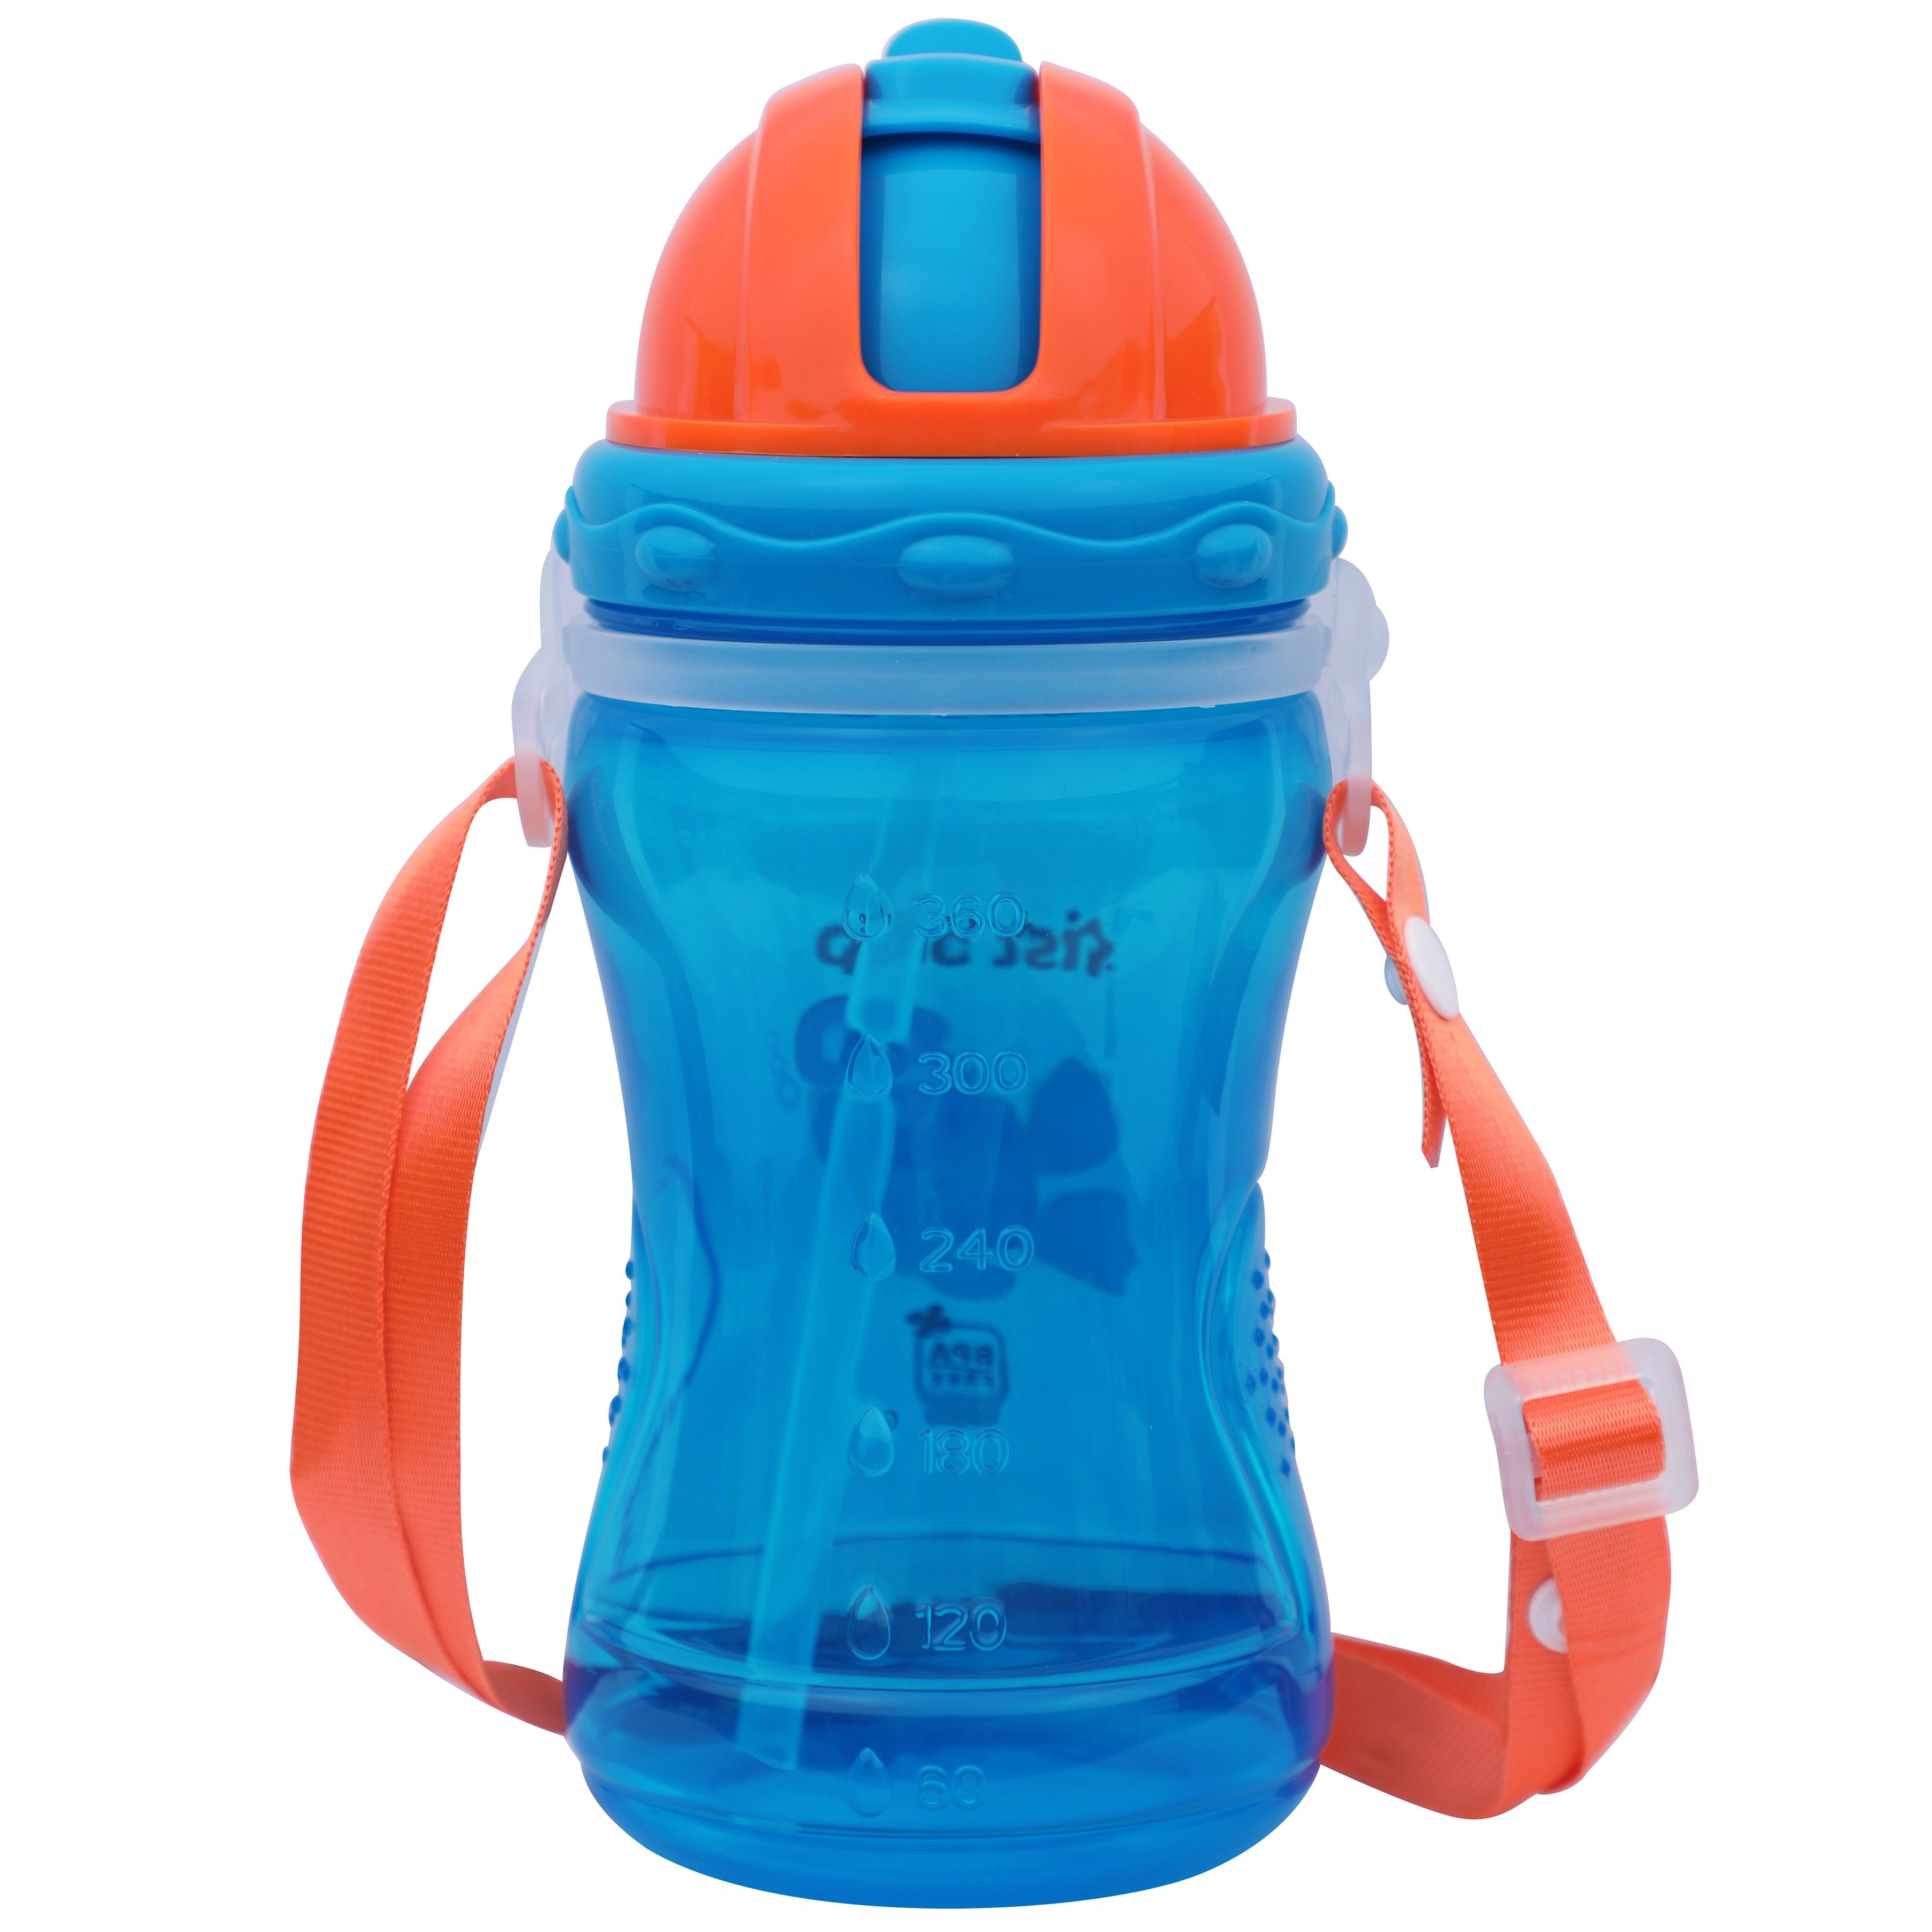 1st Step Spill Proof BPA Free Polypropylene Straw Sipper With Strap-Blue